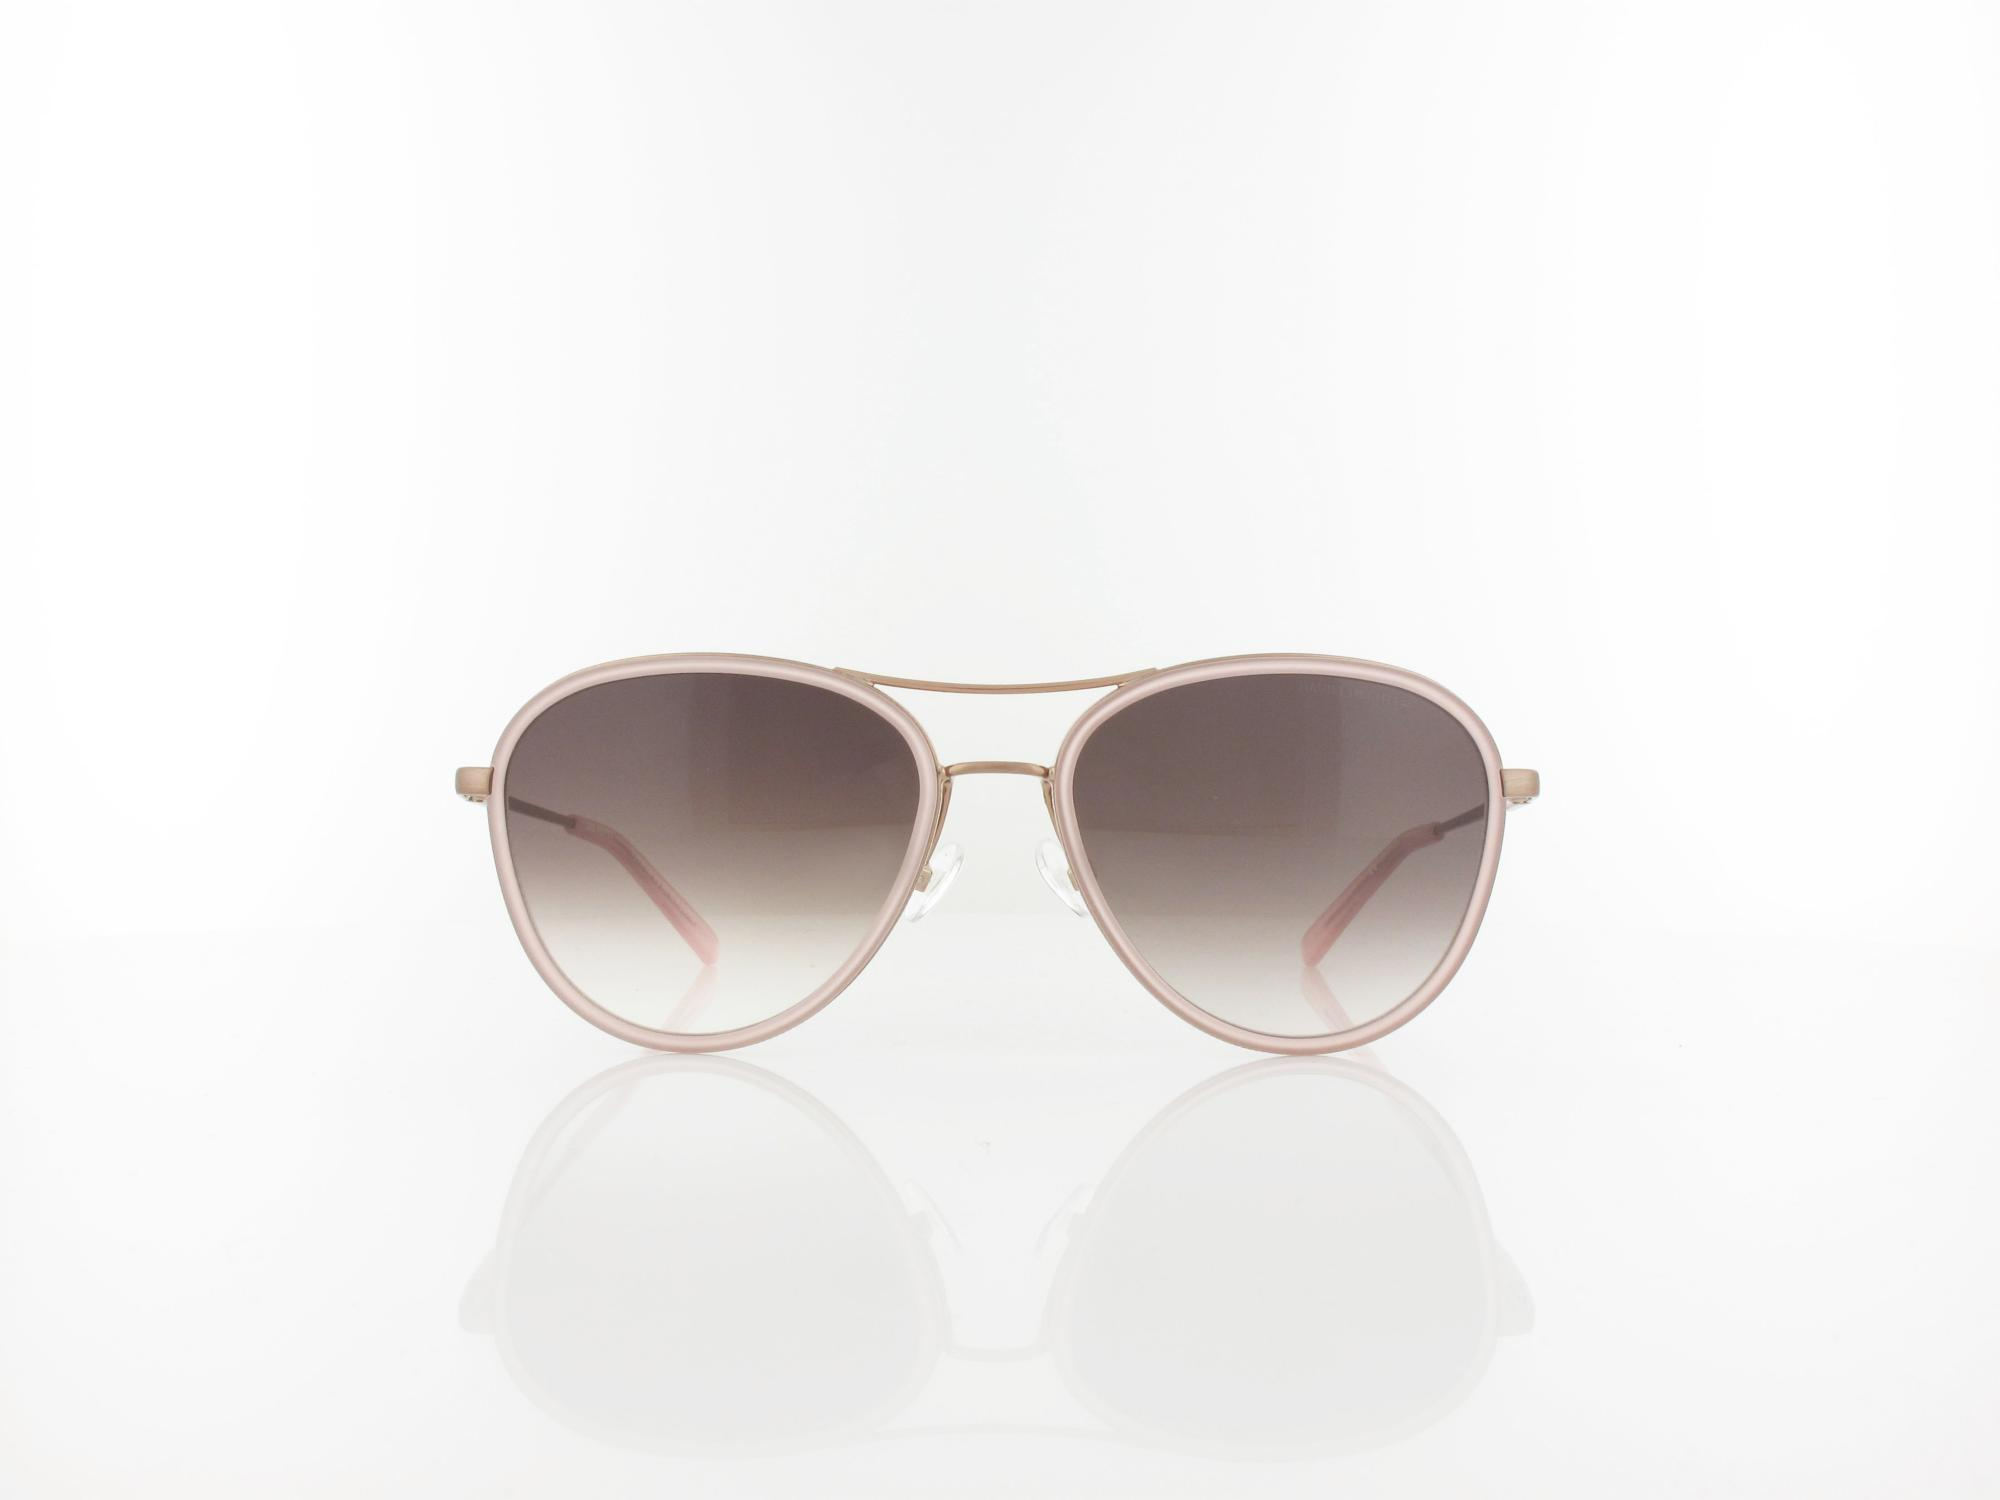 Daniel Hechter | DHS108-6 55 | rose / grey gradient